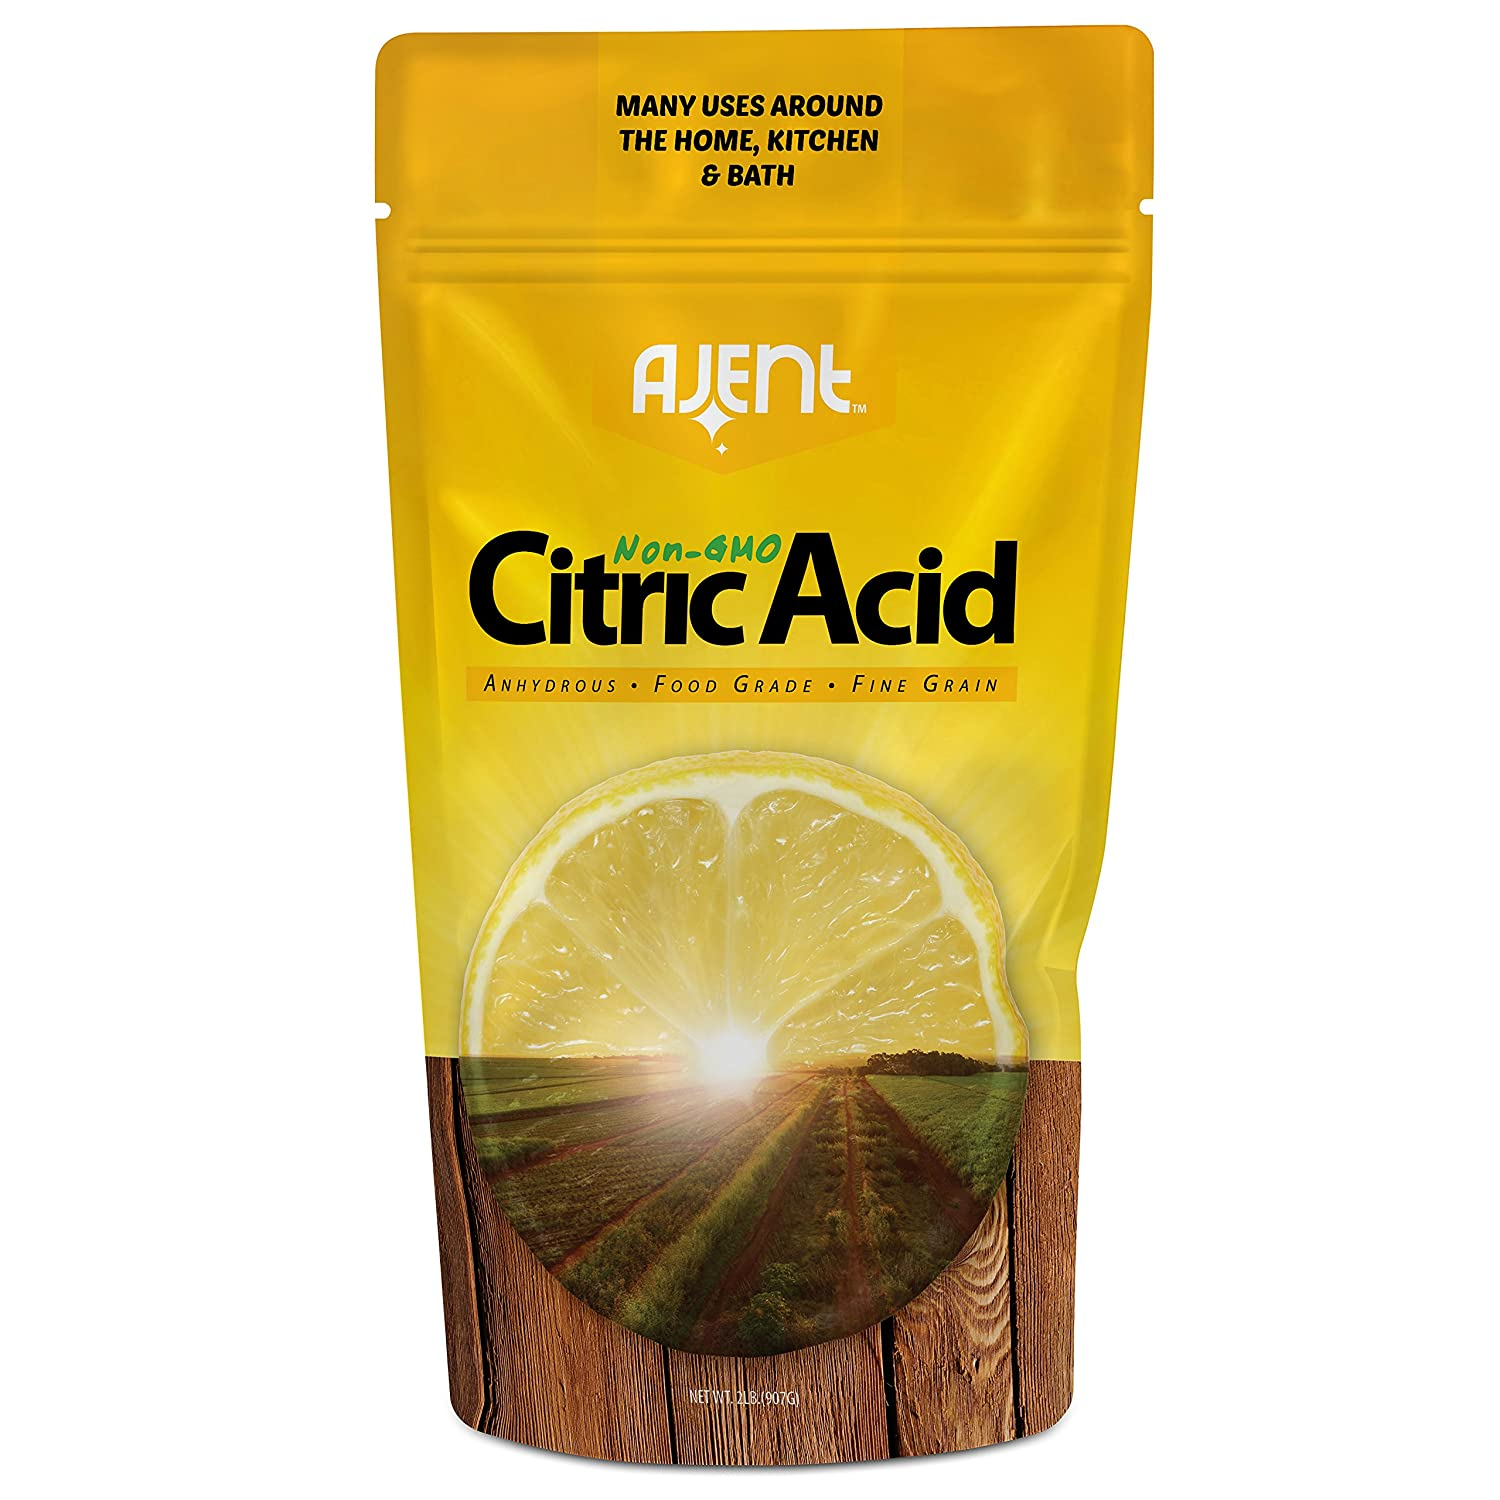 Ajent Citric Acid 2 Pound. 100% Pure Food Grade Non-GMO (Approved for Organic Foods) Bulk